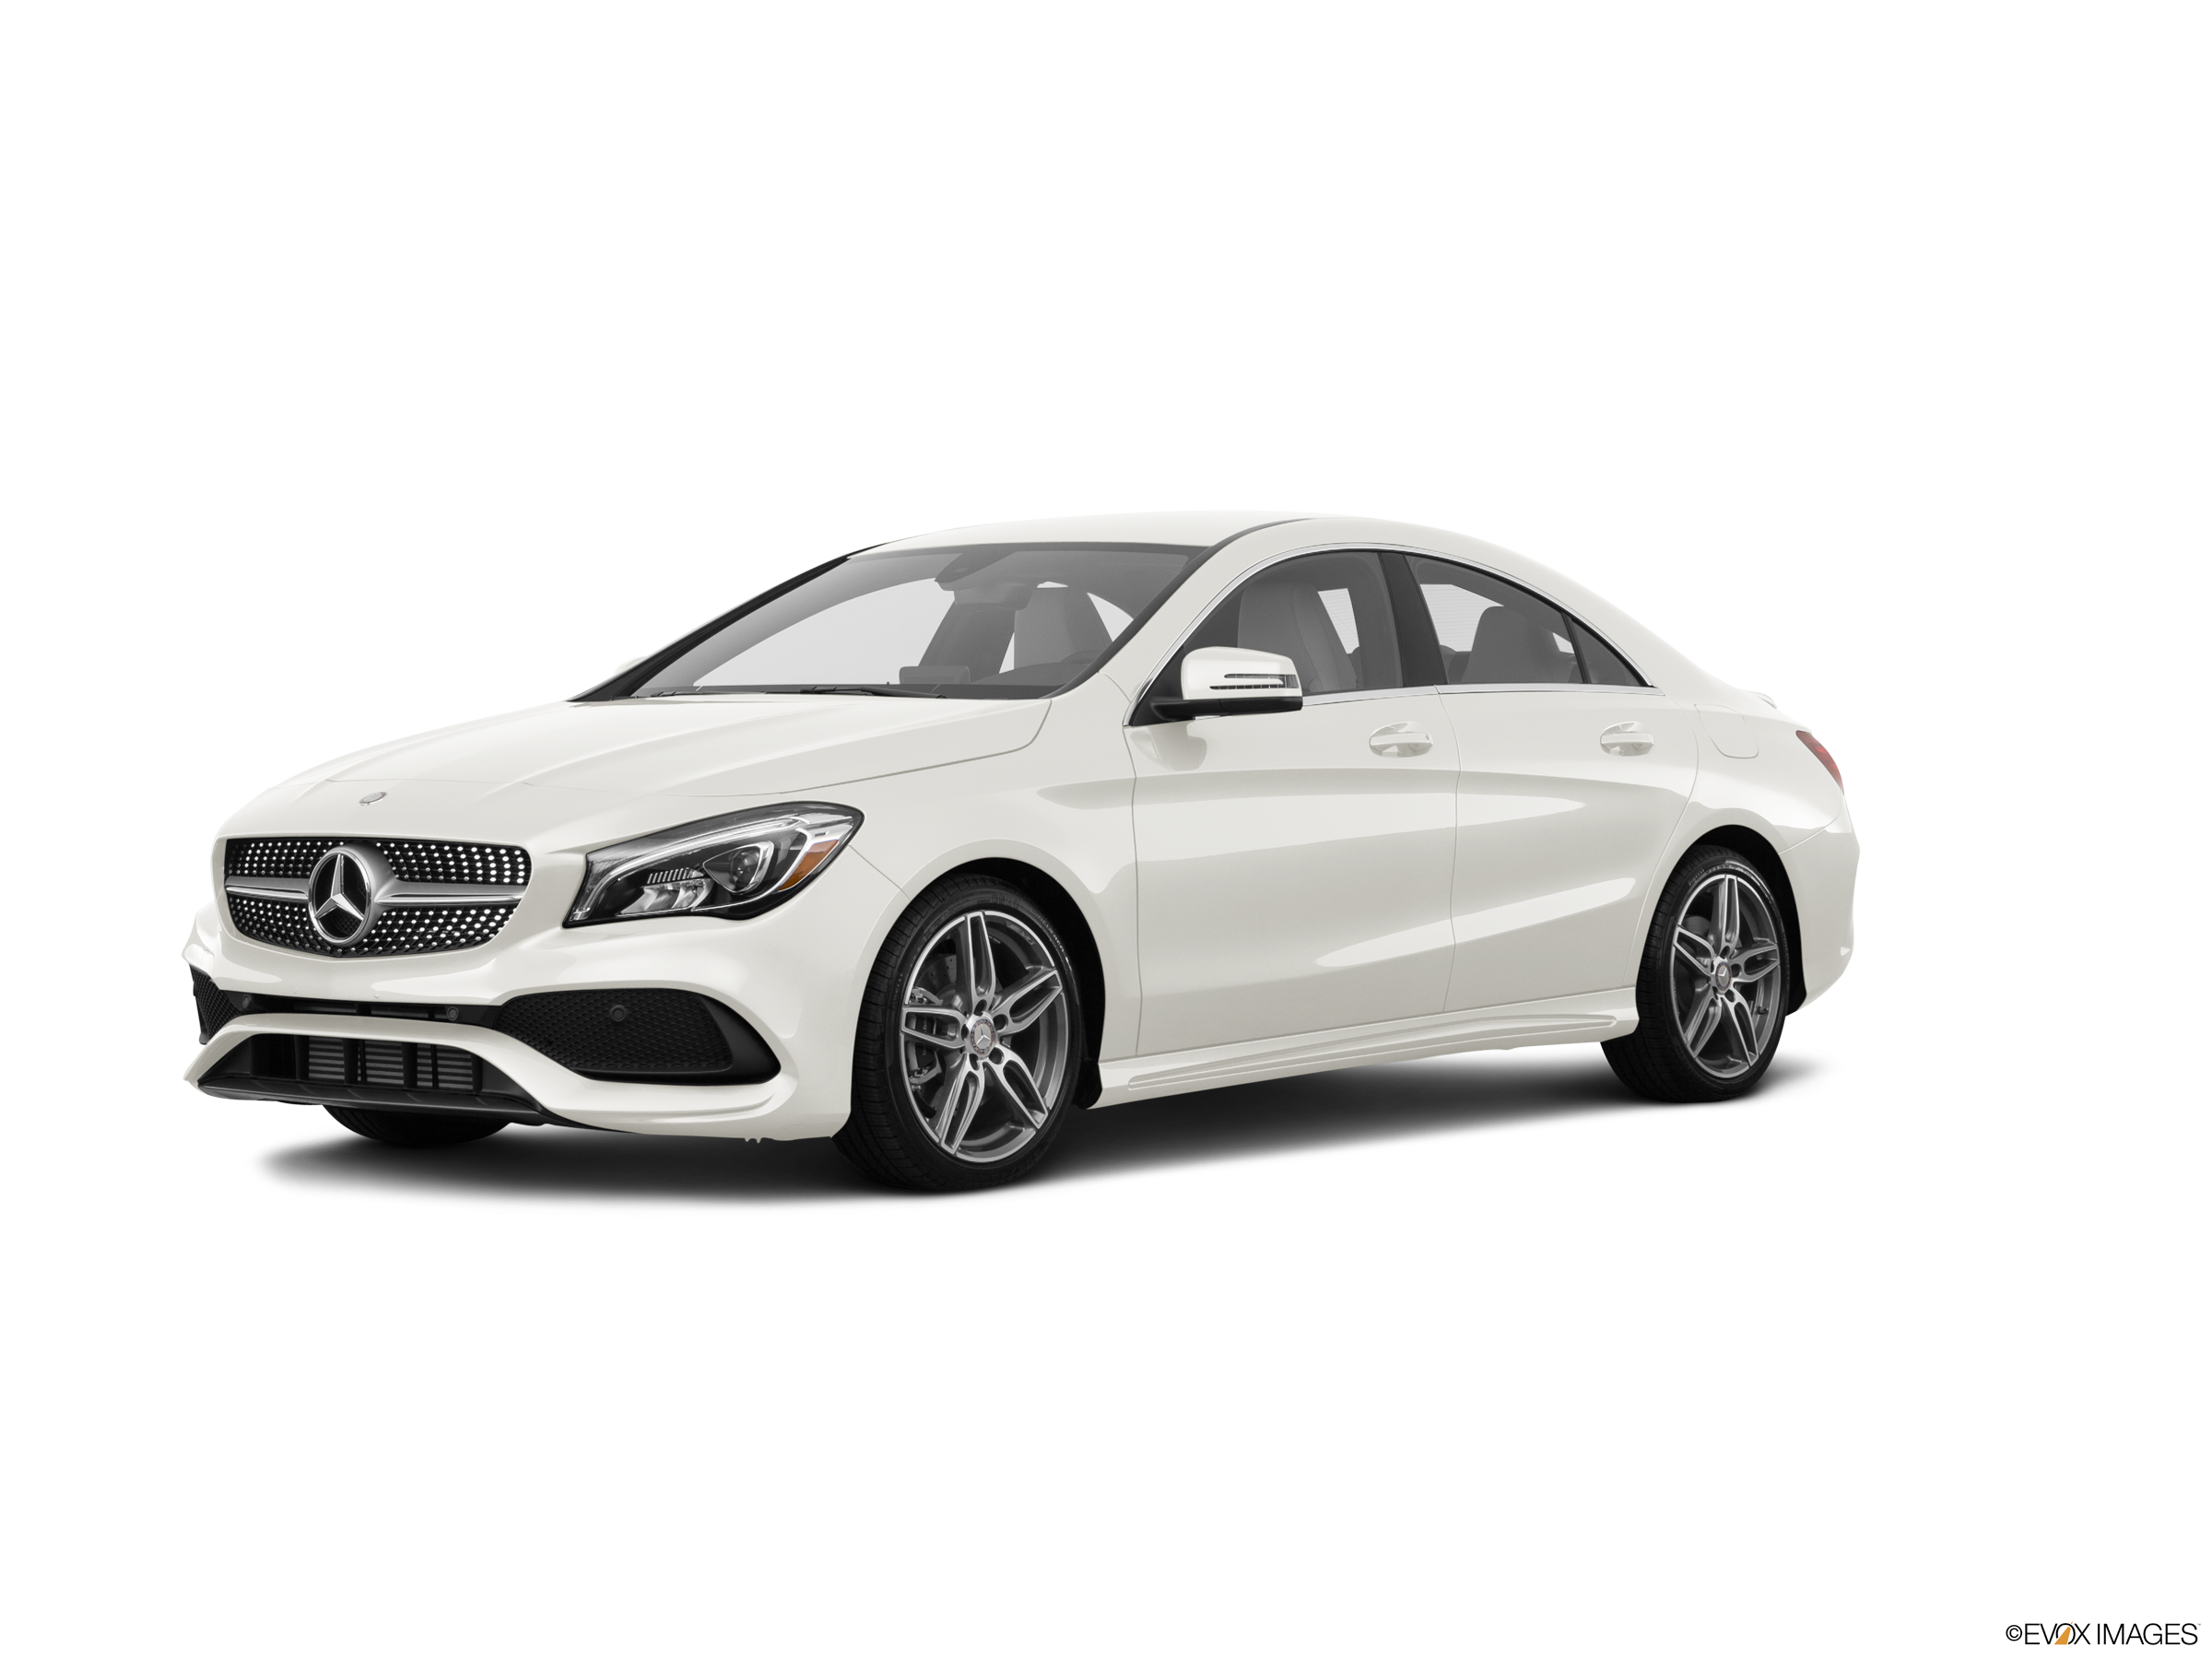 Top Expert Rated Coupes of 2017 - 2017 Mercedes-Benz CLA